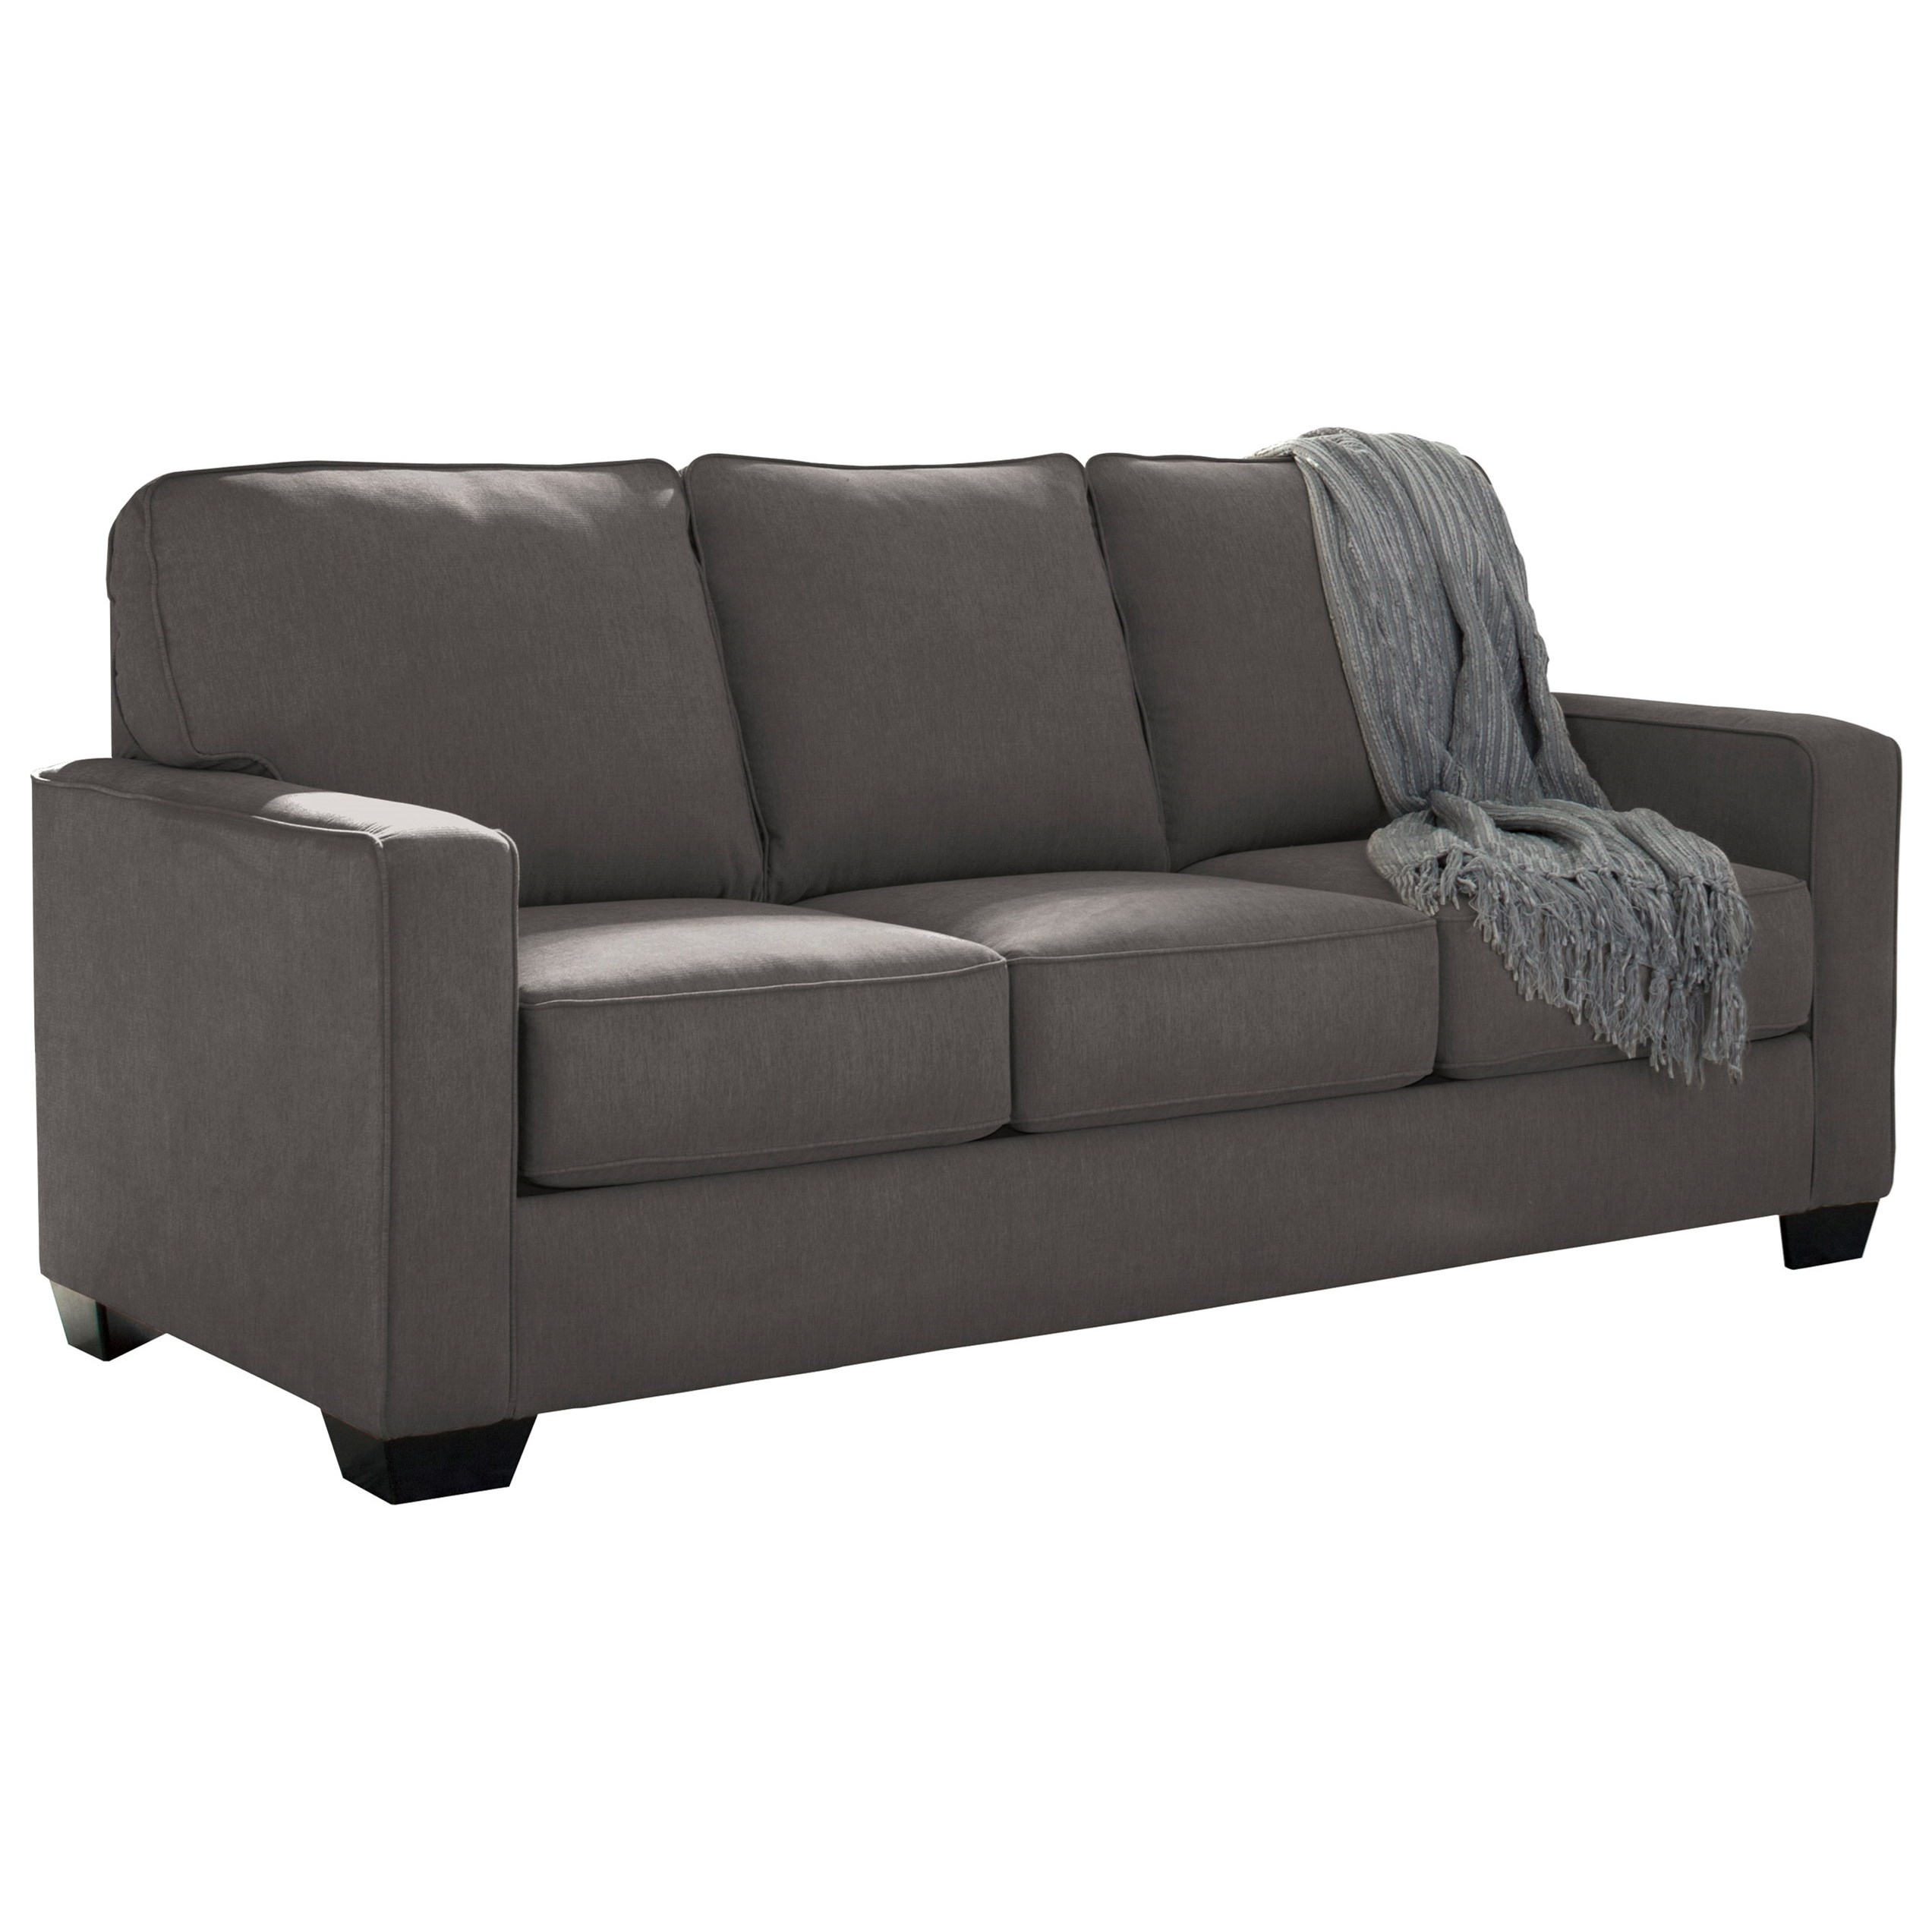 foam sofa sleeper bed 72 inches signature design by ashley zeb full with memory